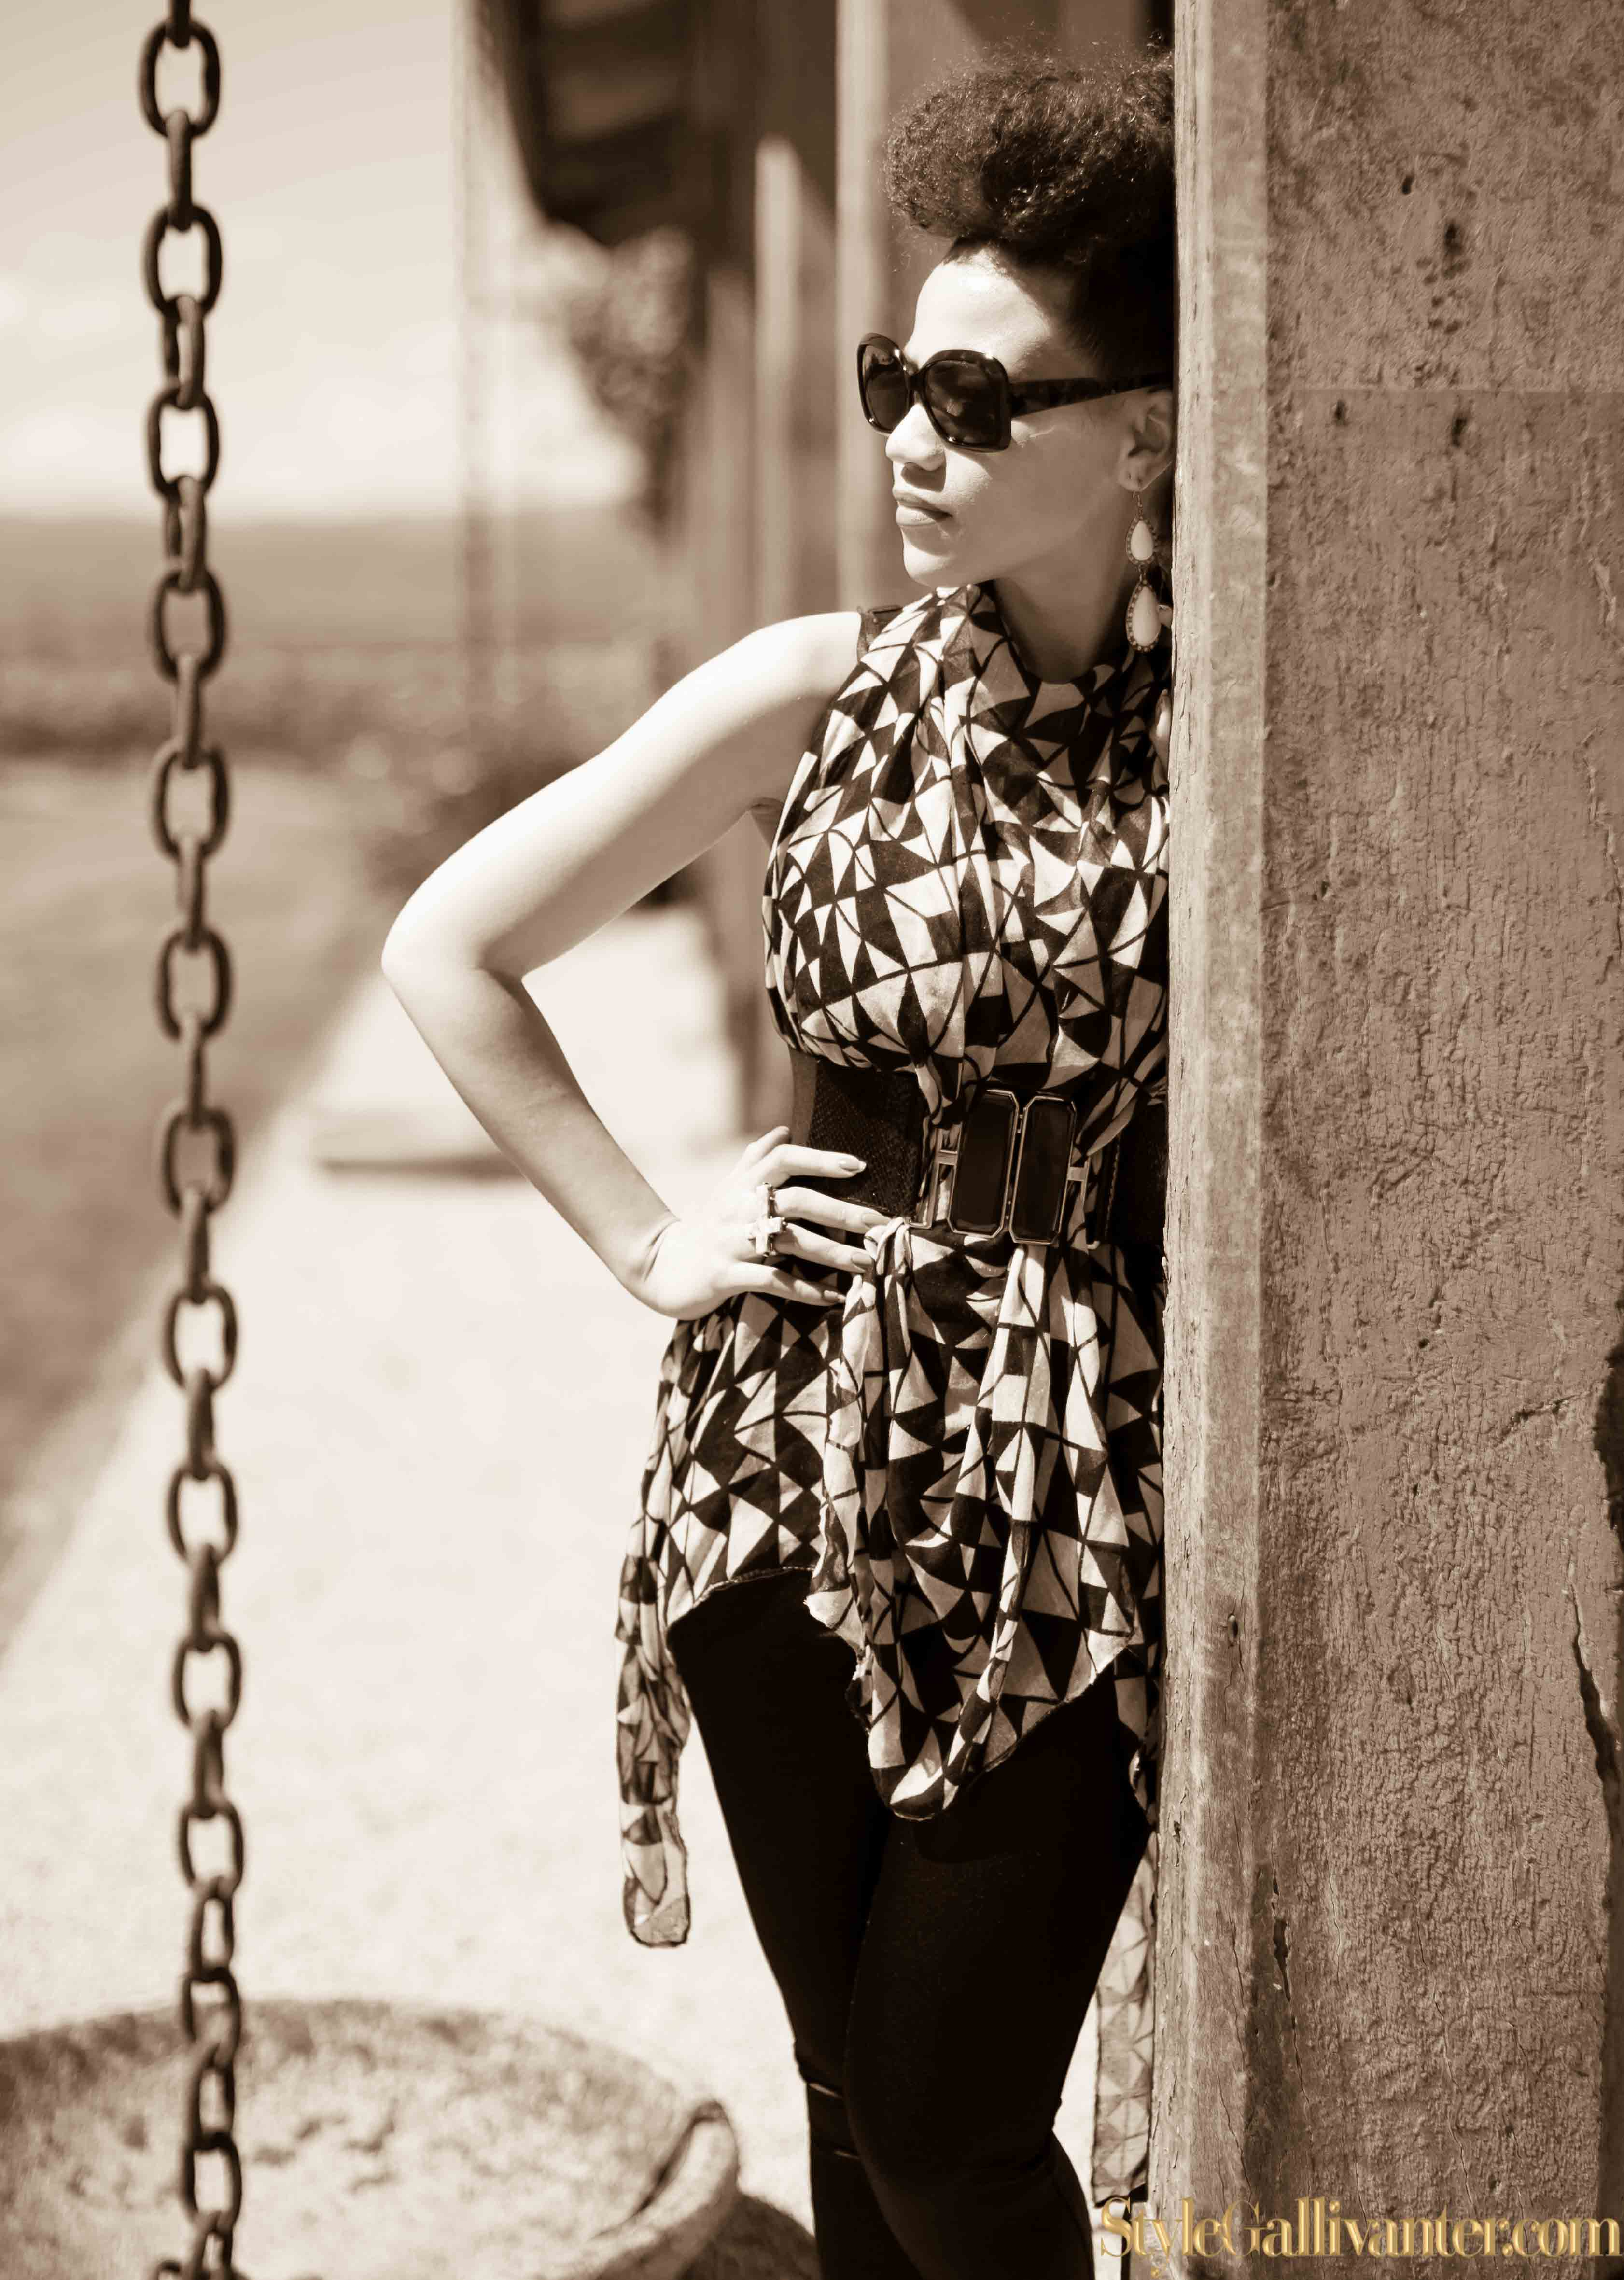 best-new-bloggers-2014_sepia-fashion-editorials_monochrome-sepia_how-to-wear-a-scarf_best-new-bloggers-melbourne-australia-2014_top-african-hair-bloggers_best-hair-bloggers-2